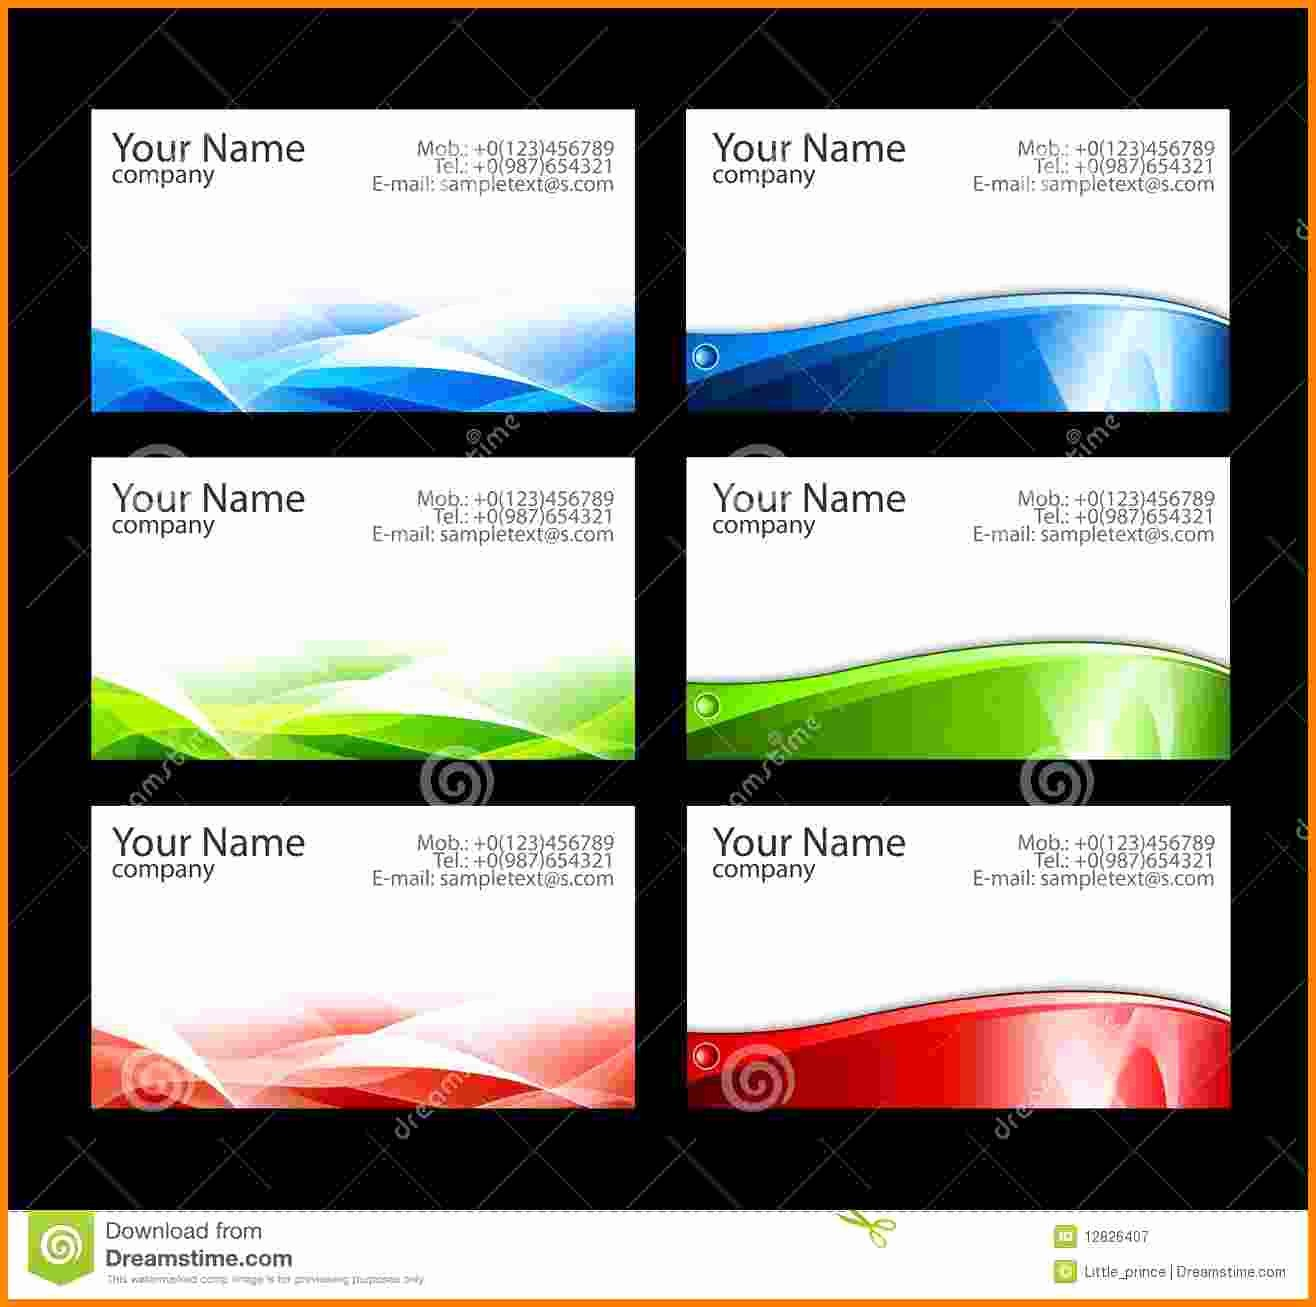 Business Card with Picture Template Luxury 9 Blank Business Card Template Illustrator